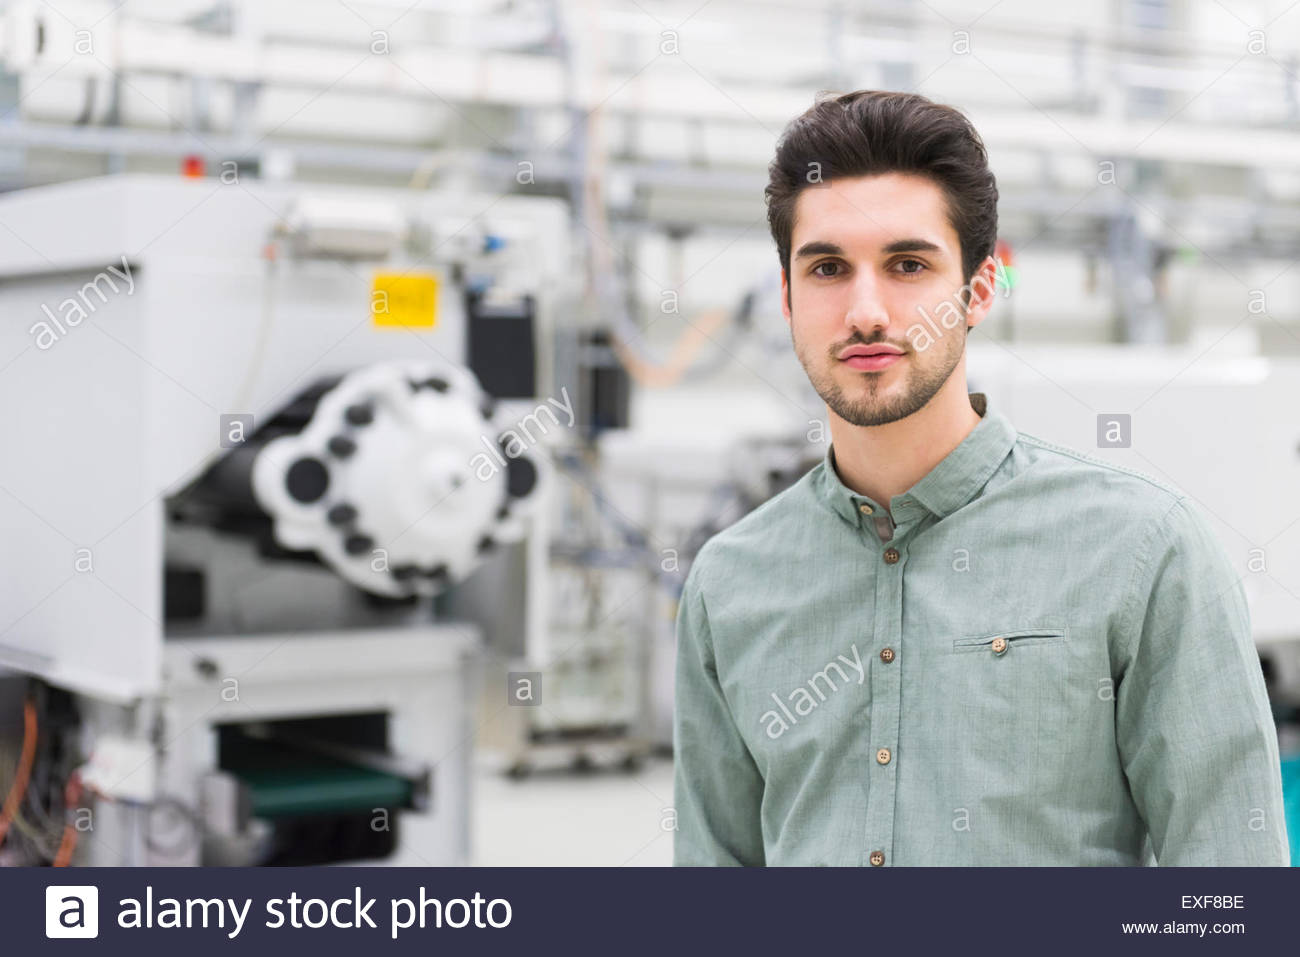 Portrait of male worker at tool manufacturing plant - Stock Image